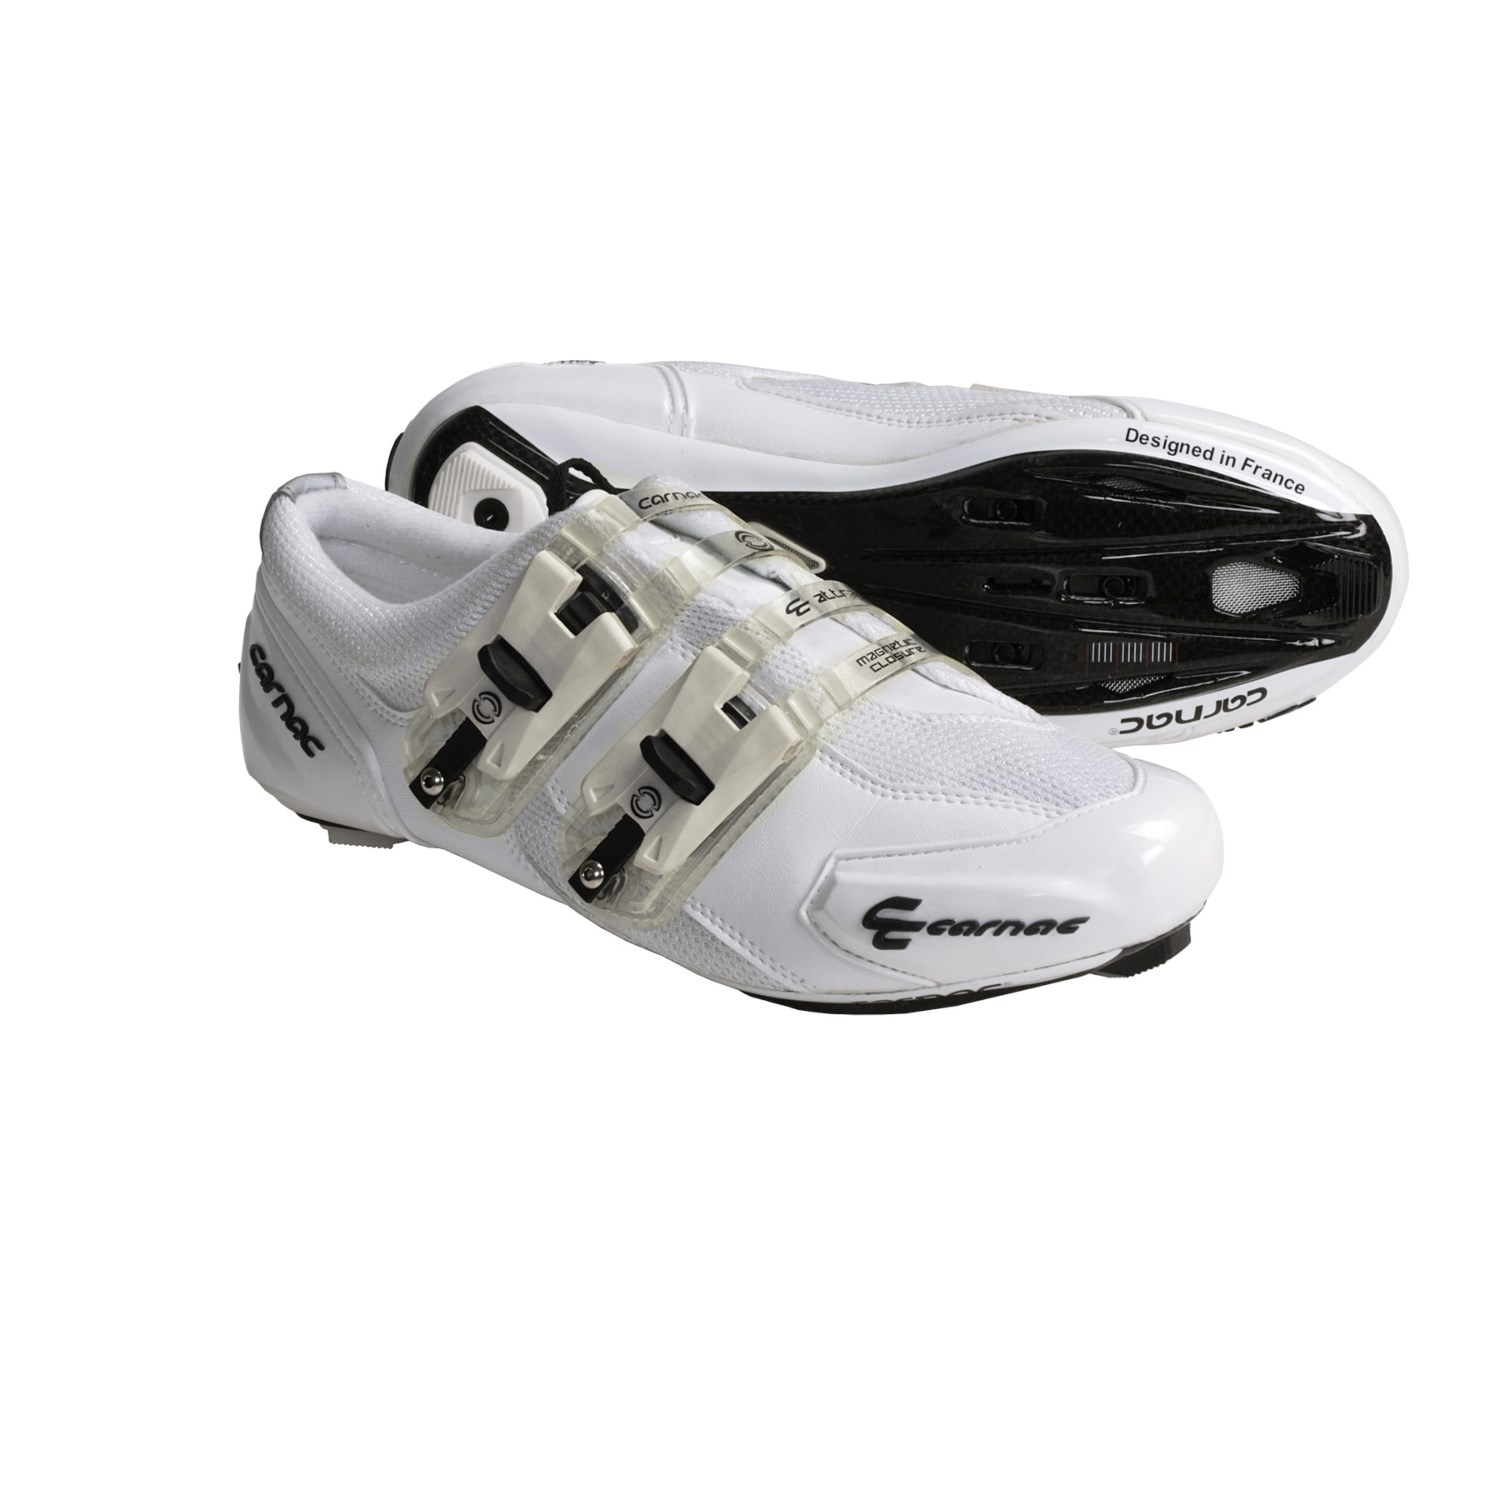 Best Value Carbon Cycling Shoes